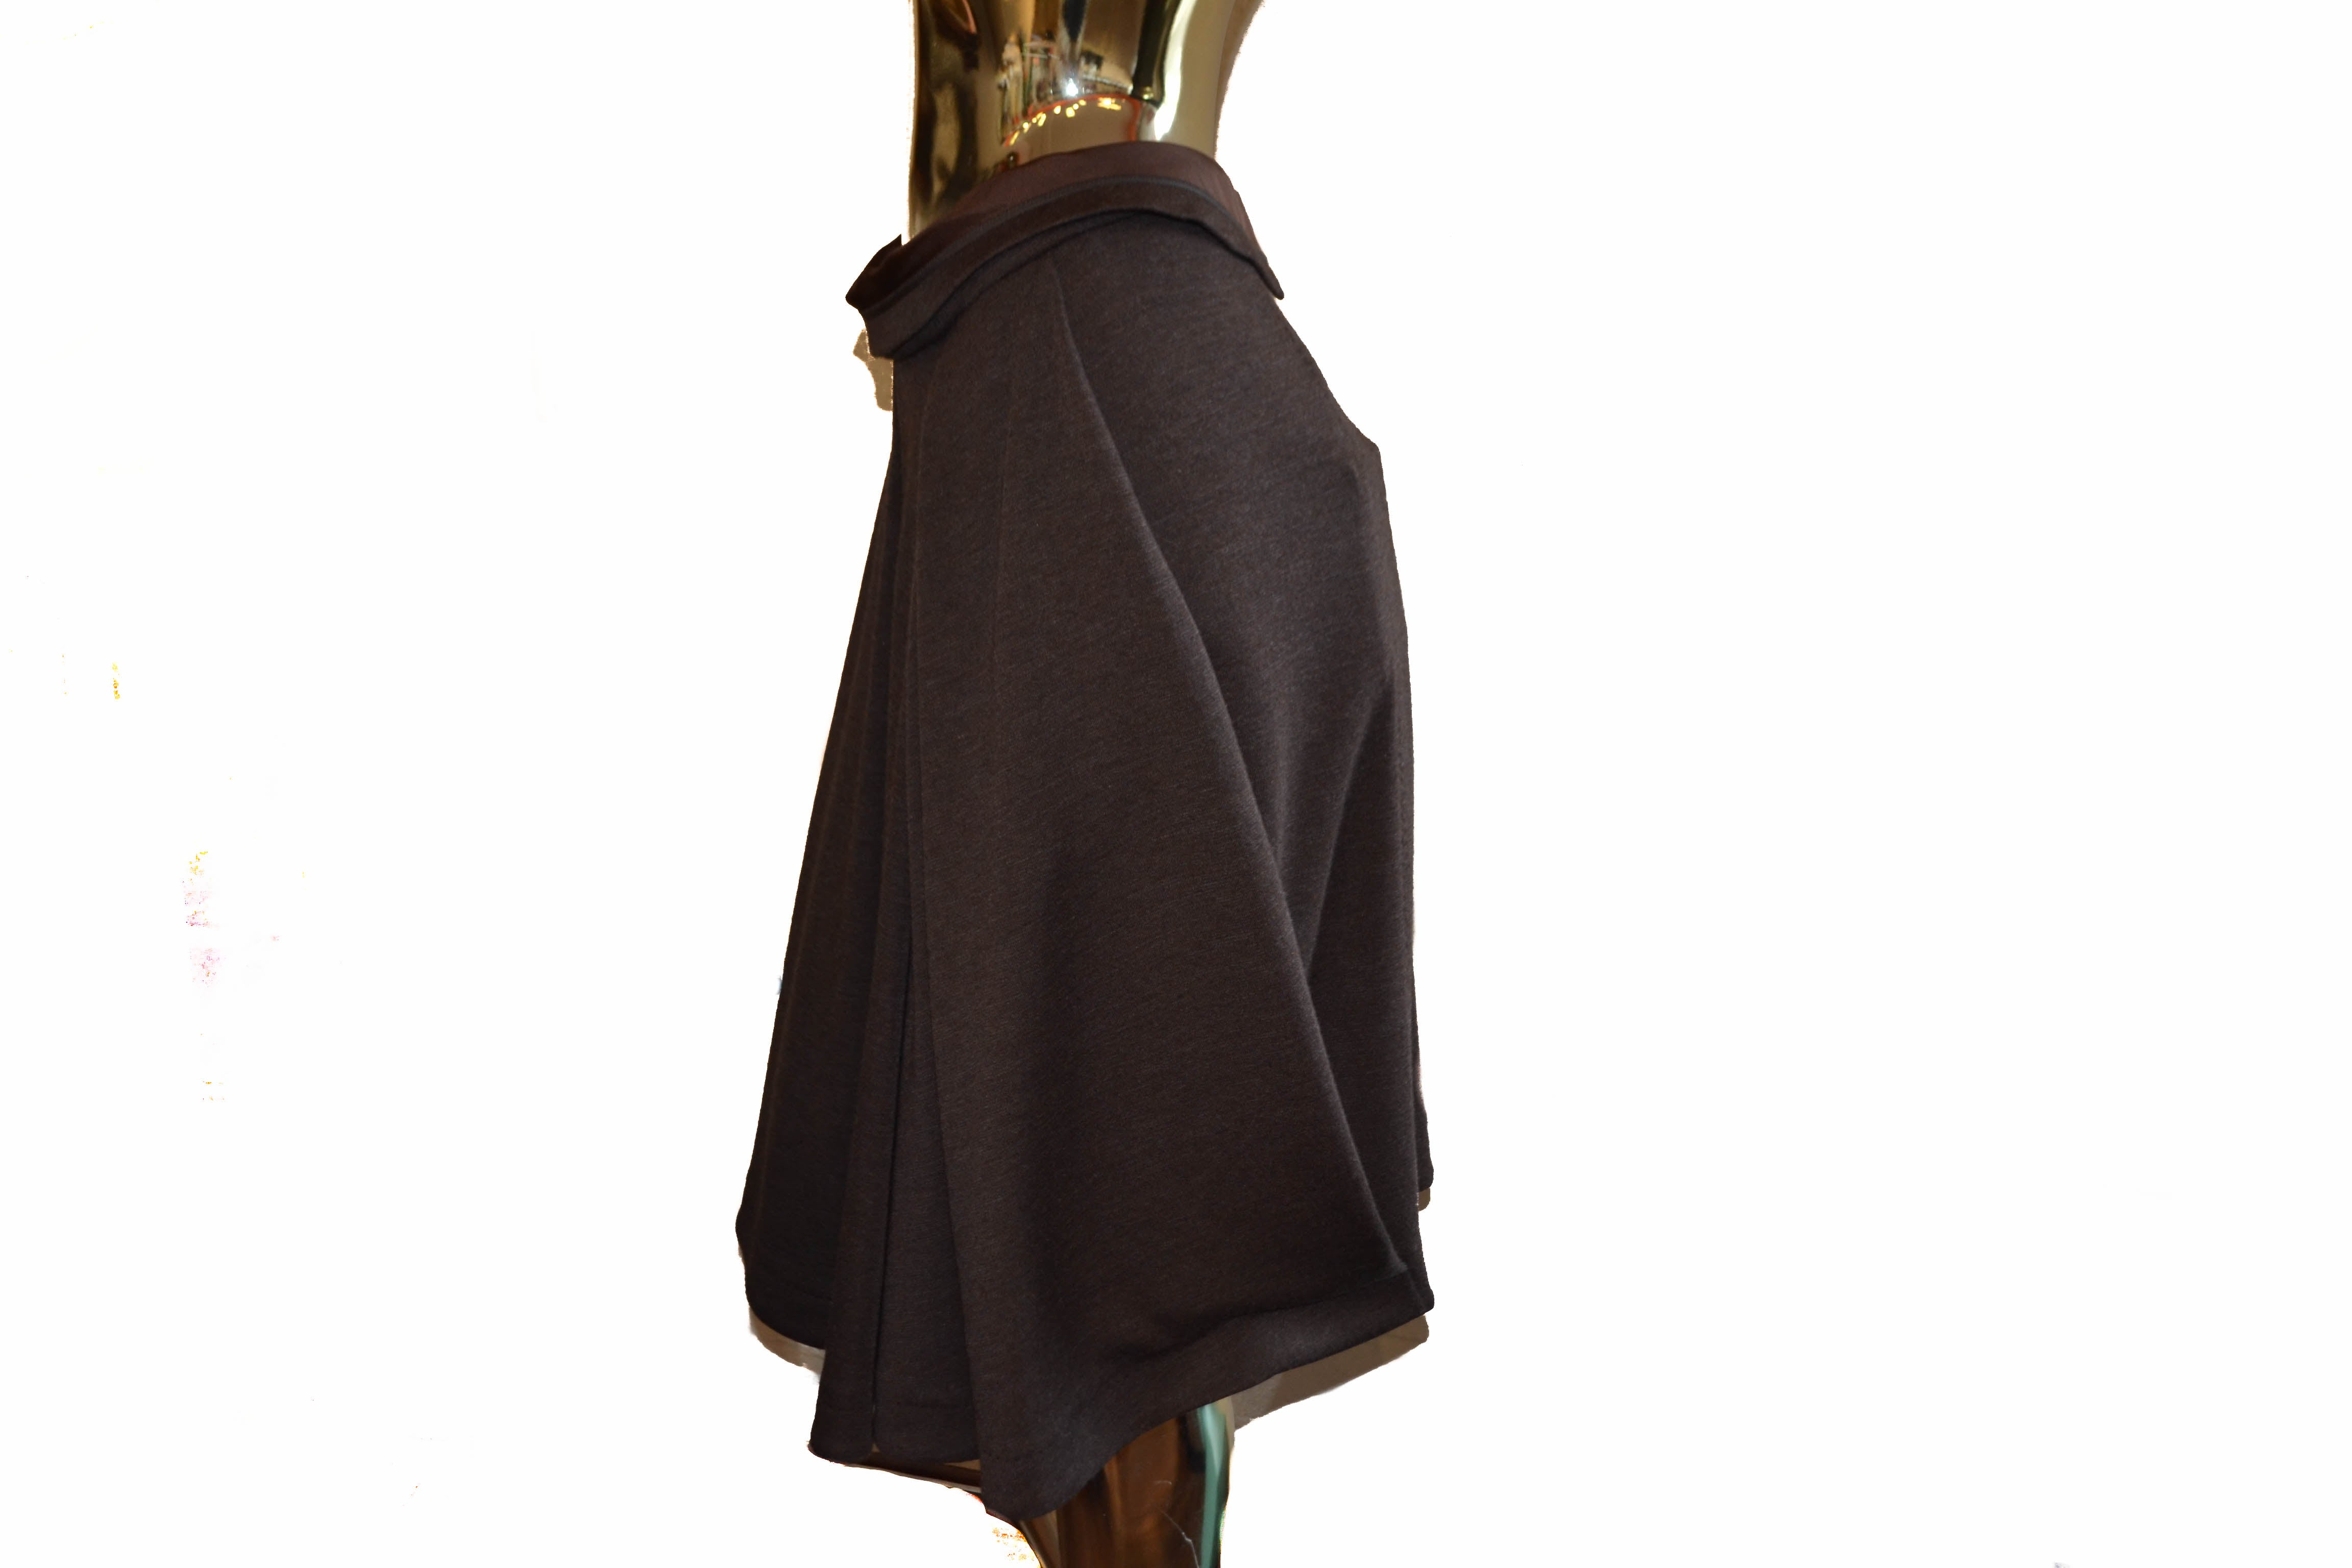 Authentic Louis Vuitton Dark Brown Pleats Ski Wool Midi Skirts Size 36